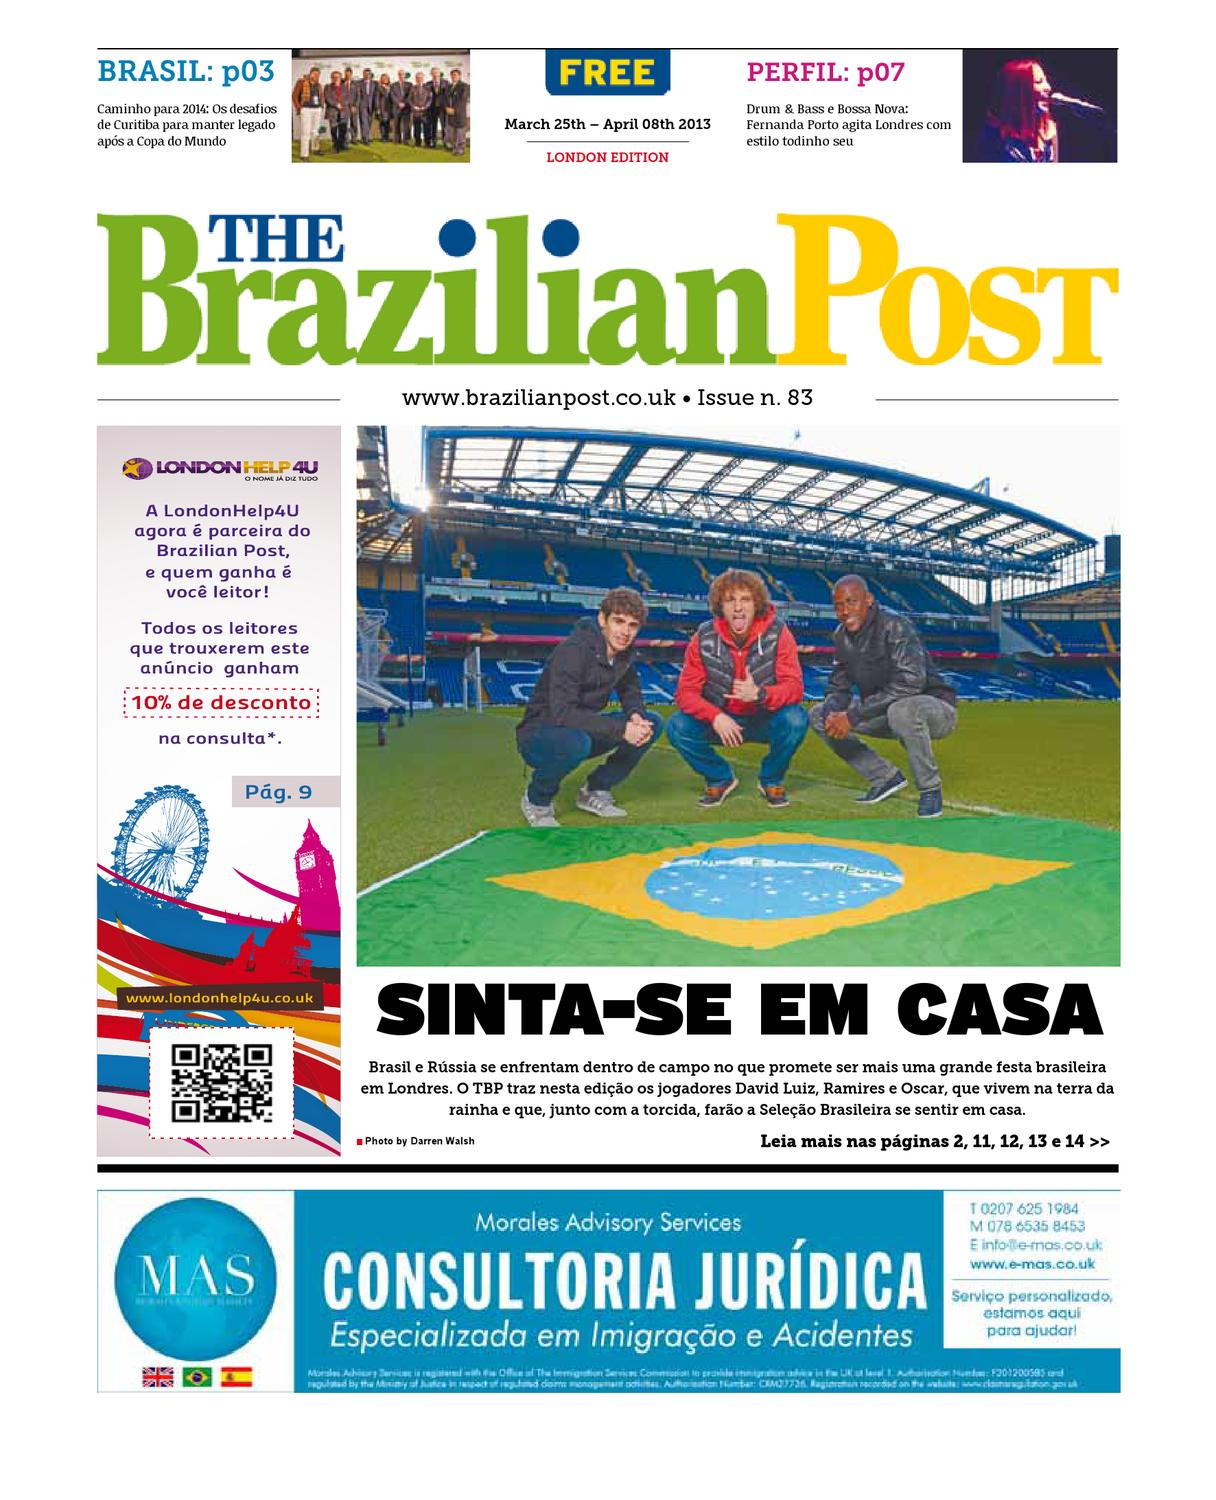 The Brazilian Post - Portuguese - Issue 83 by The Brazilian Post - issuu 2845ae0d8f38a